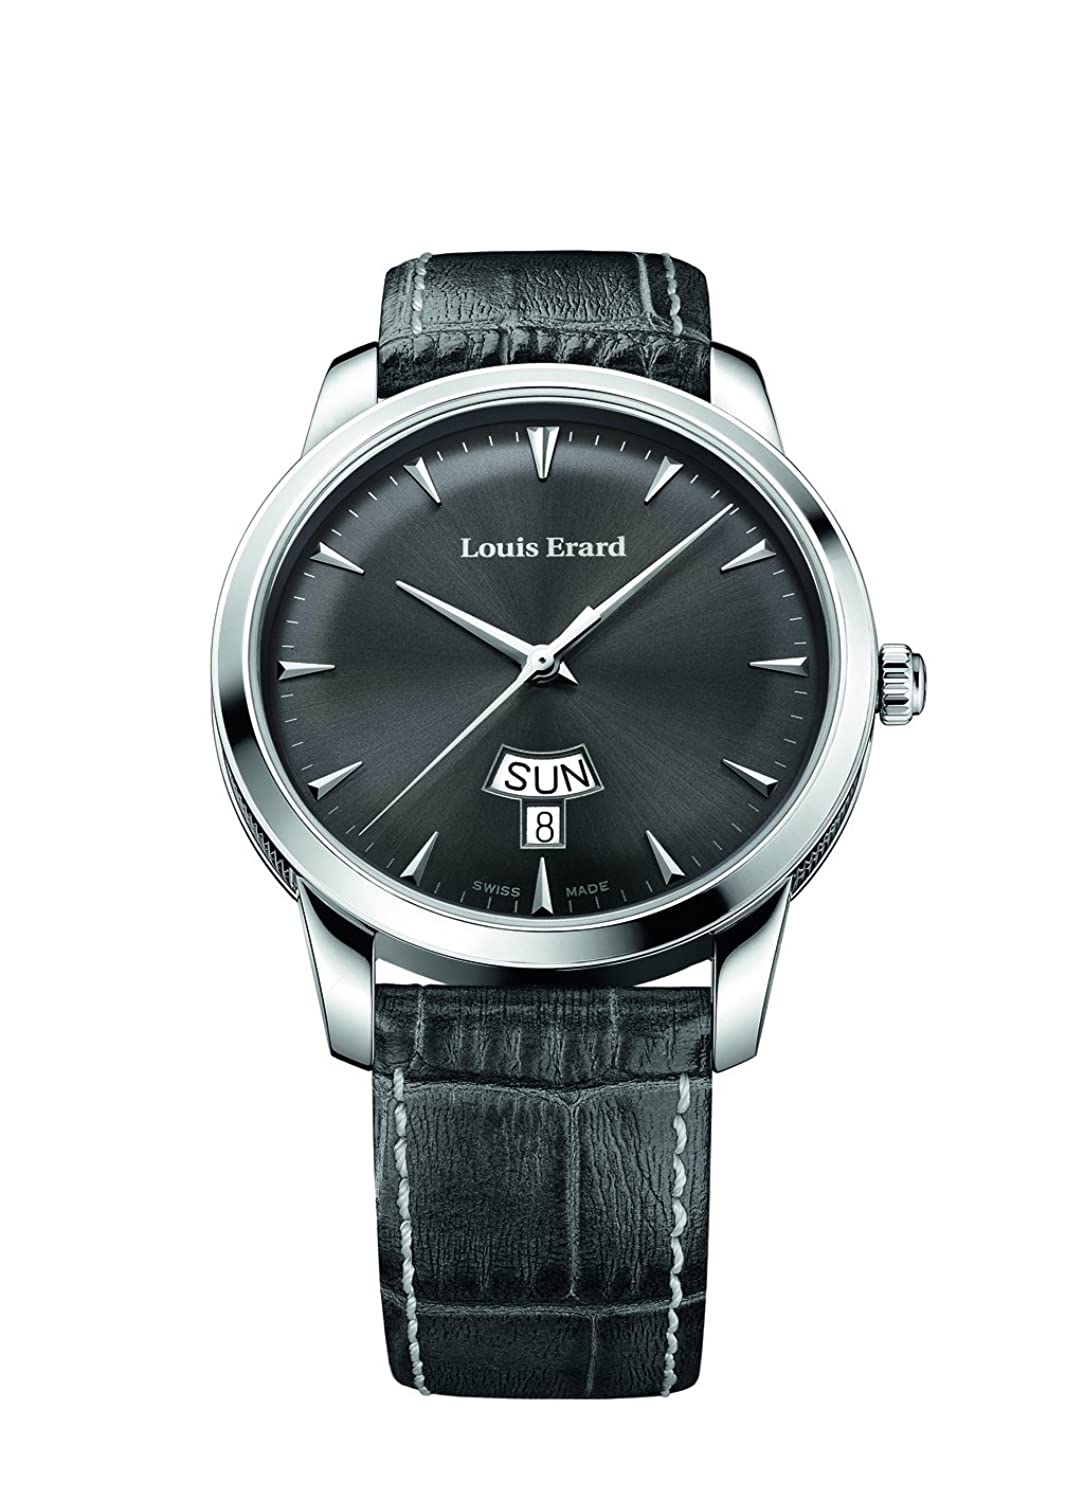 Louis Erard Heritage Collection Swiss Quarz grau Zifferblatt Herren-Armbanduhr 15920AA03. bep103